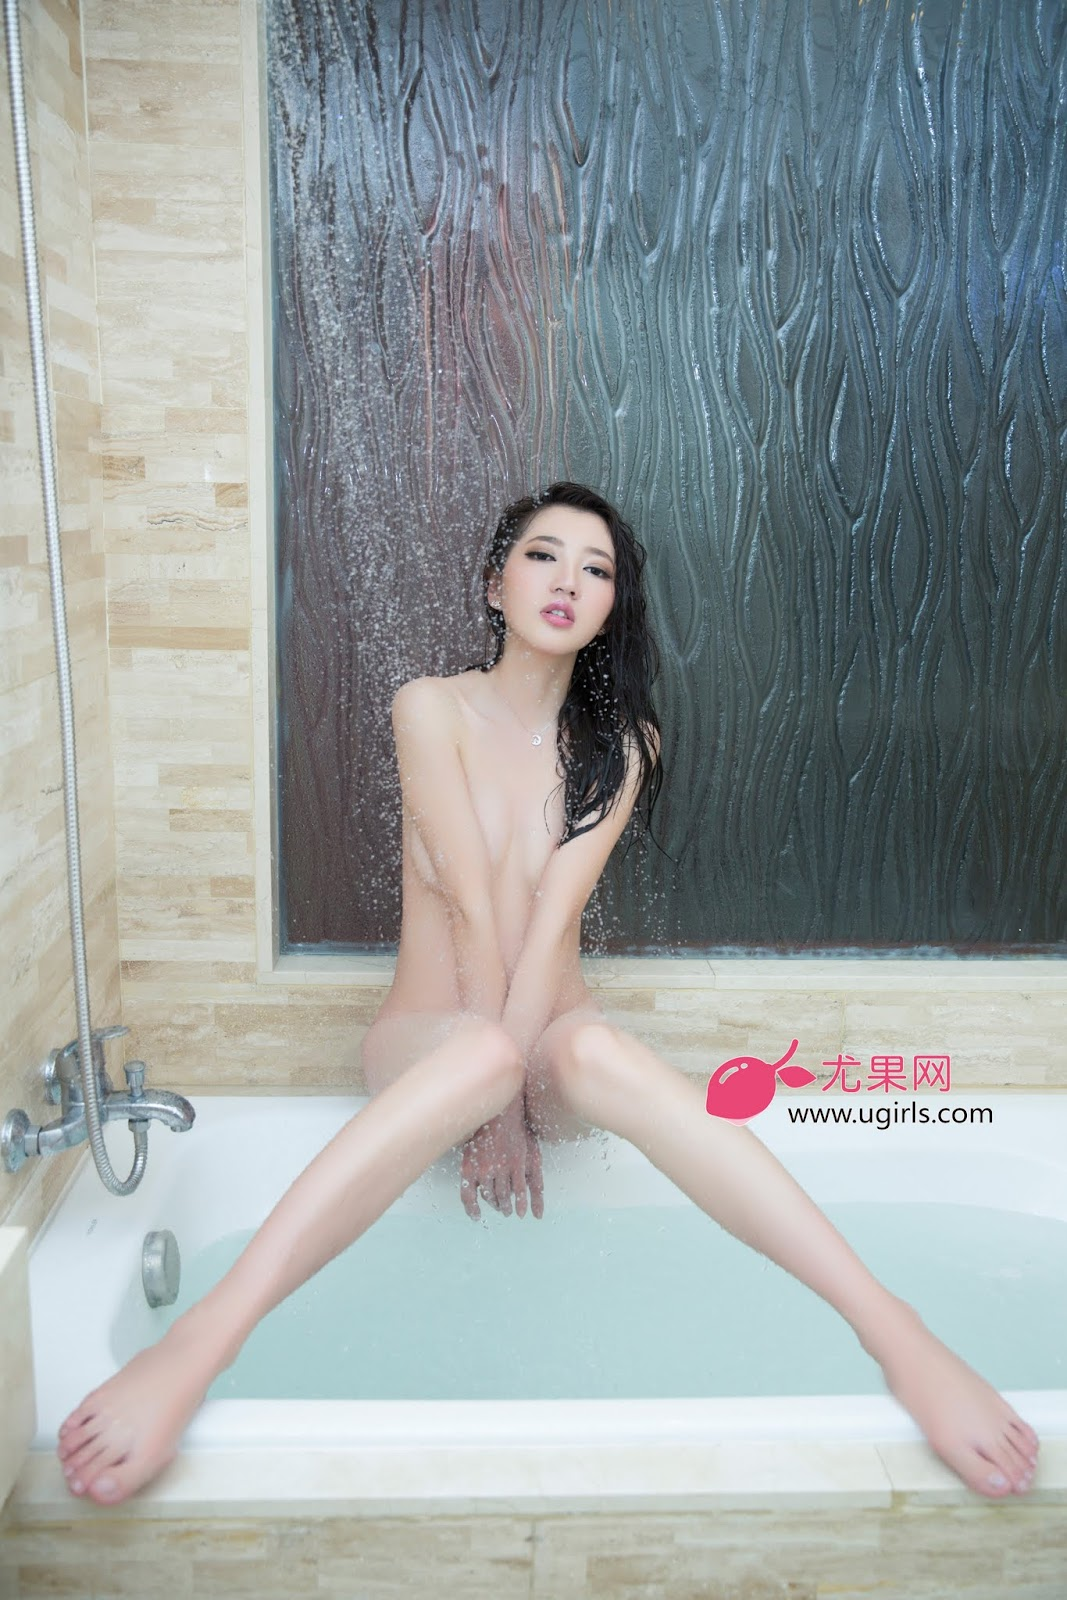 A14A5712 - Hot Model UGIRLS NO.8